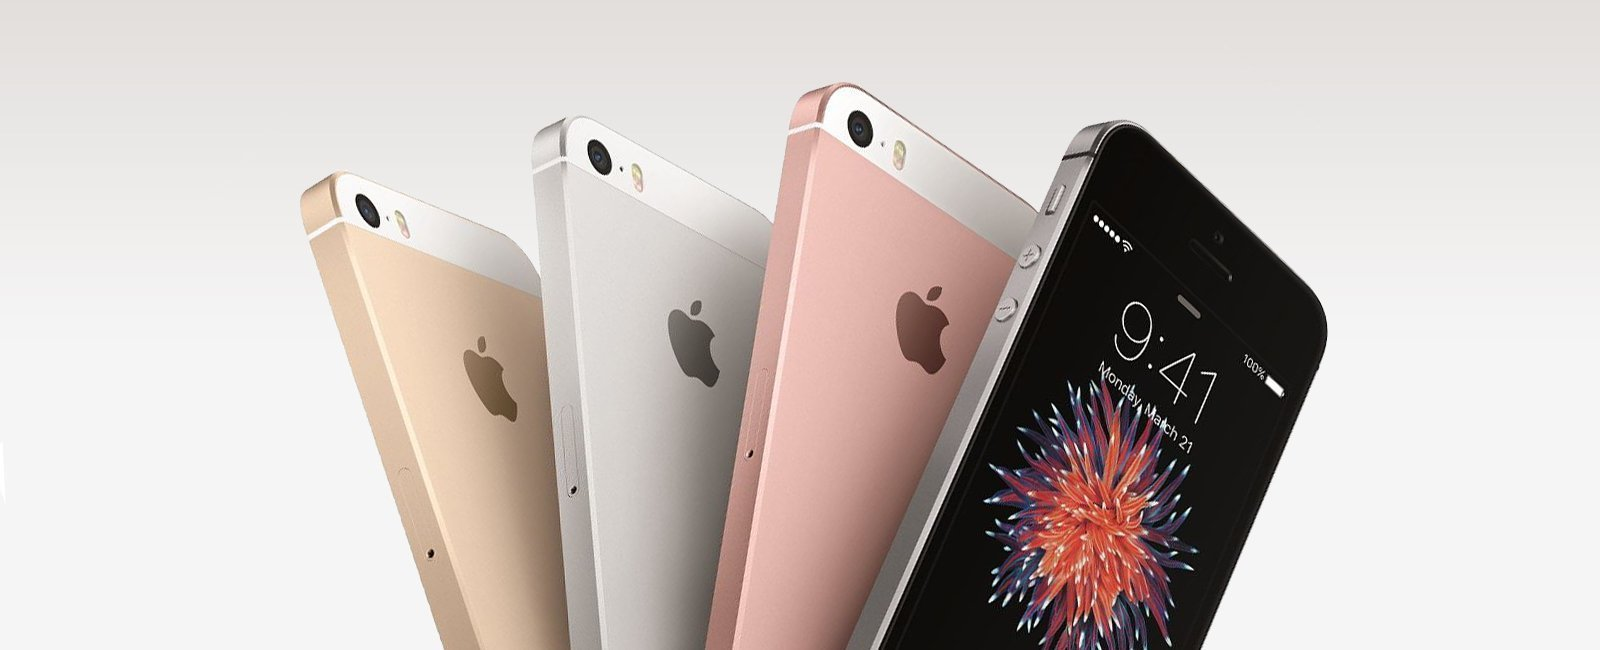 iPhone SE vs iPhone 6 (2020): How To Choose Between The ...